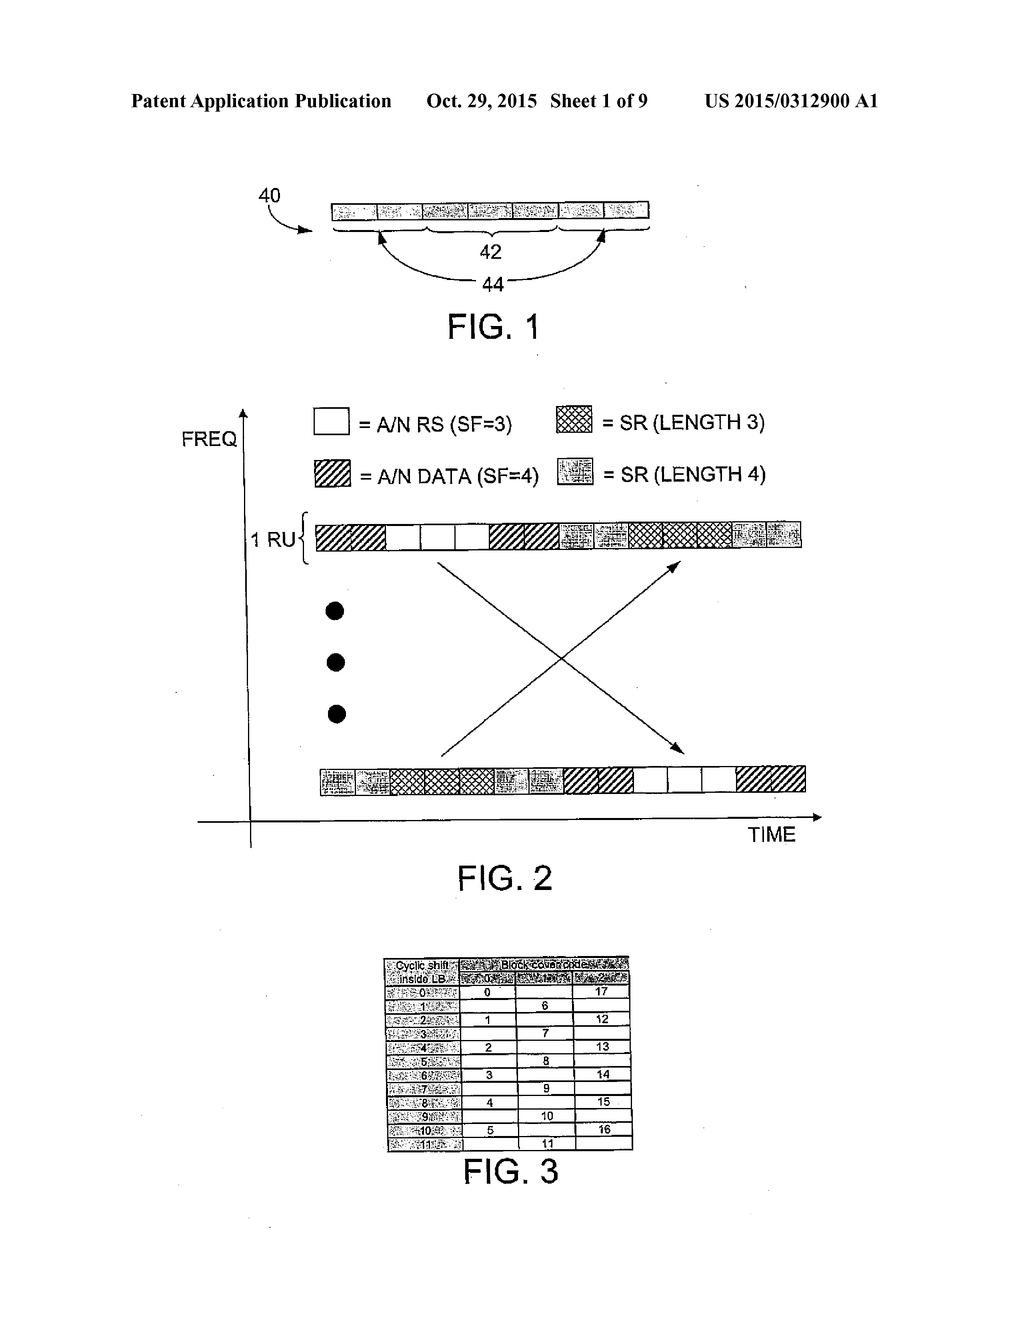 Providing Improved Scheduling Request Signaling With Ack Nack Or Cqi Schematic Diagram X2 02 And Image